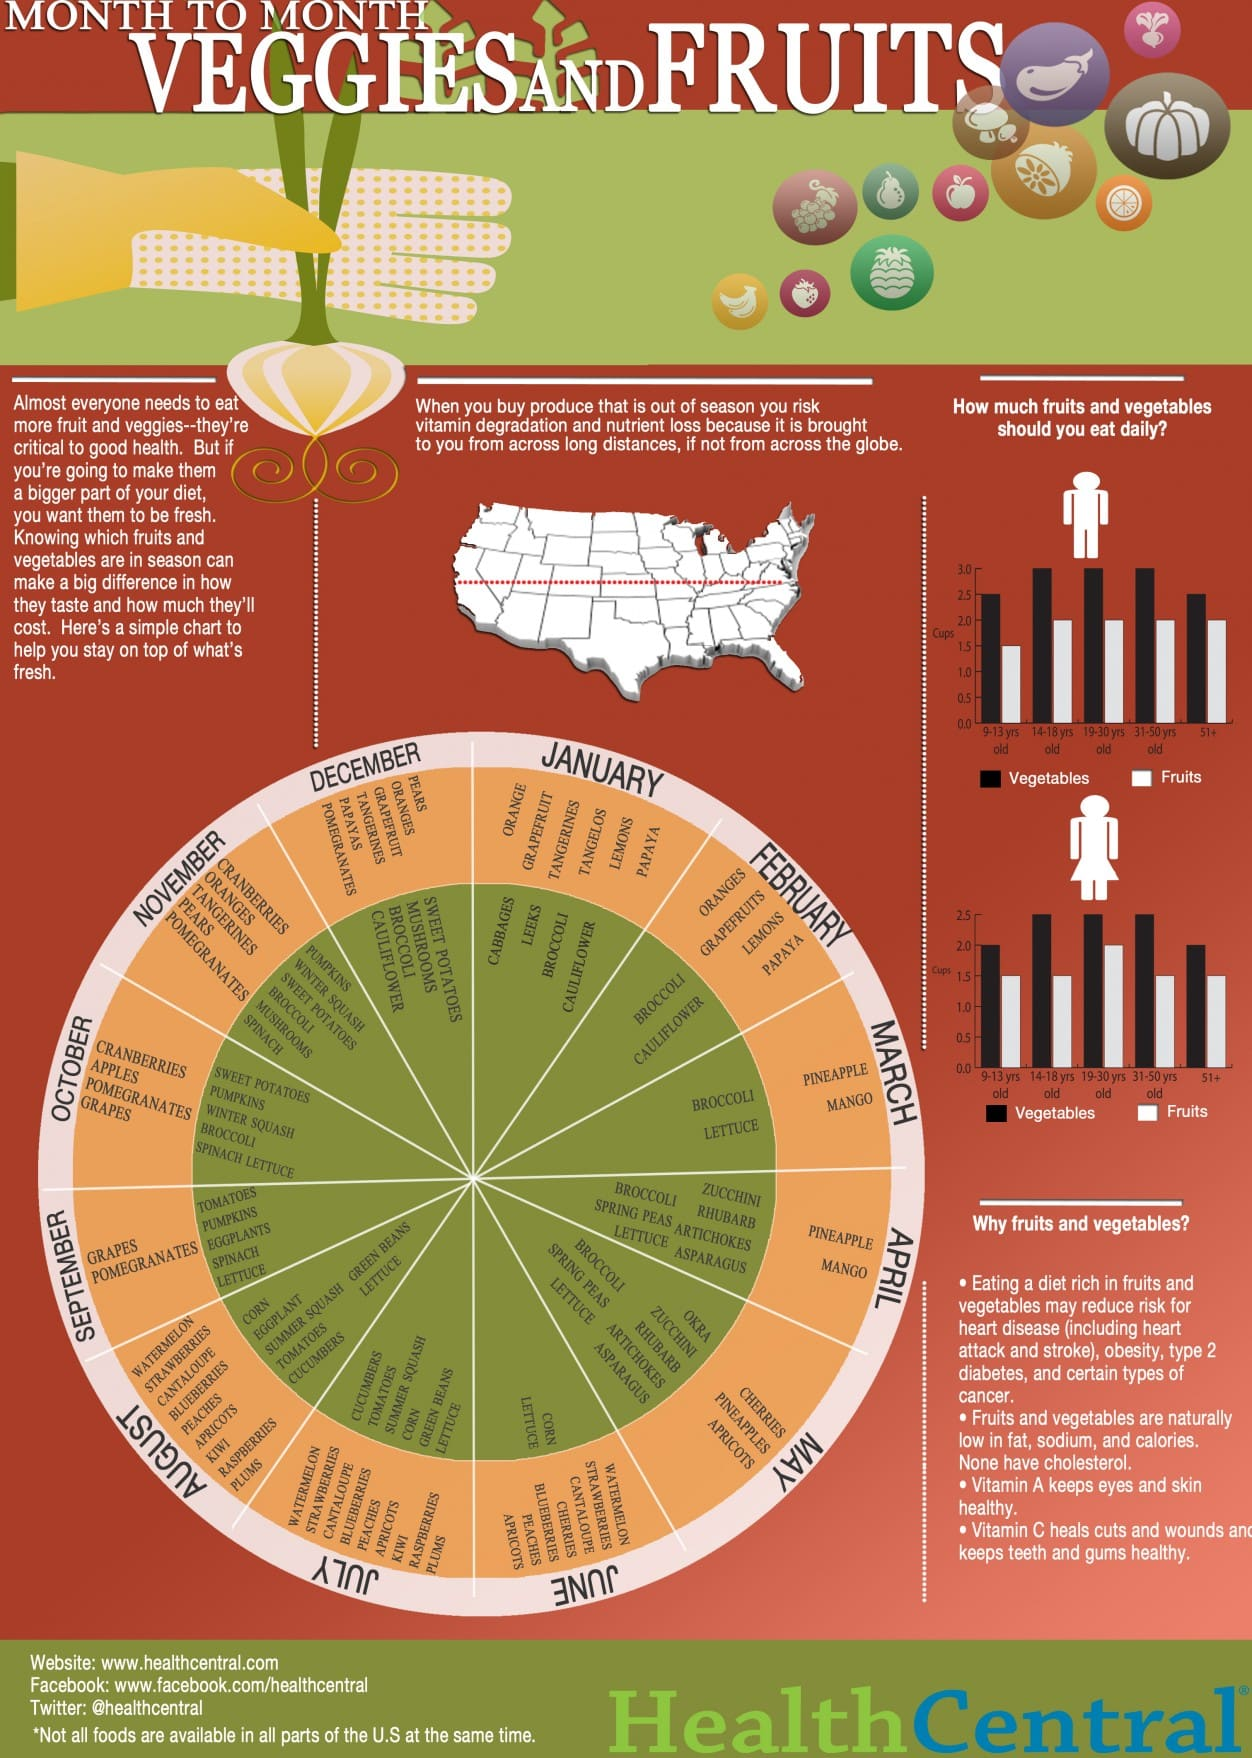 month to month veggies and fruit infographic your guide to seasonal cooking